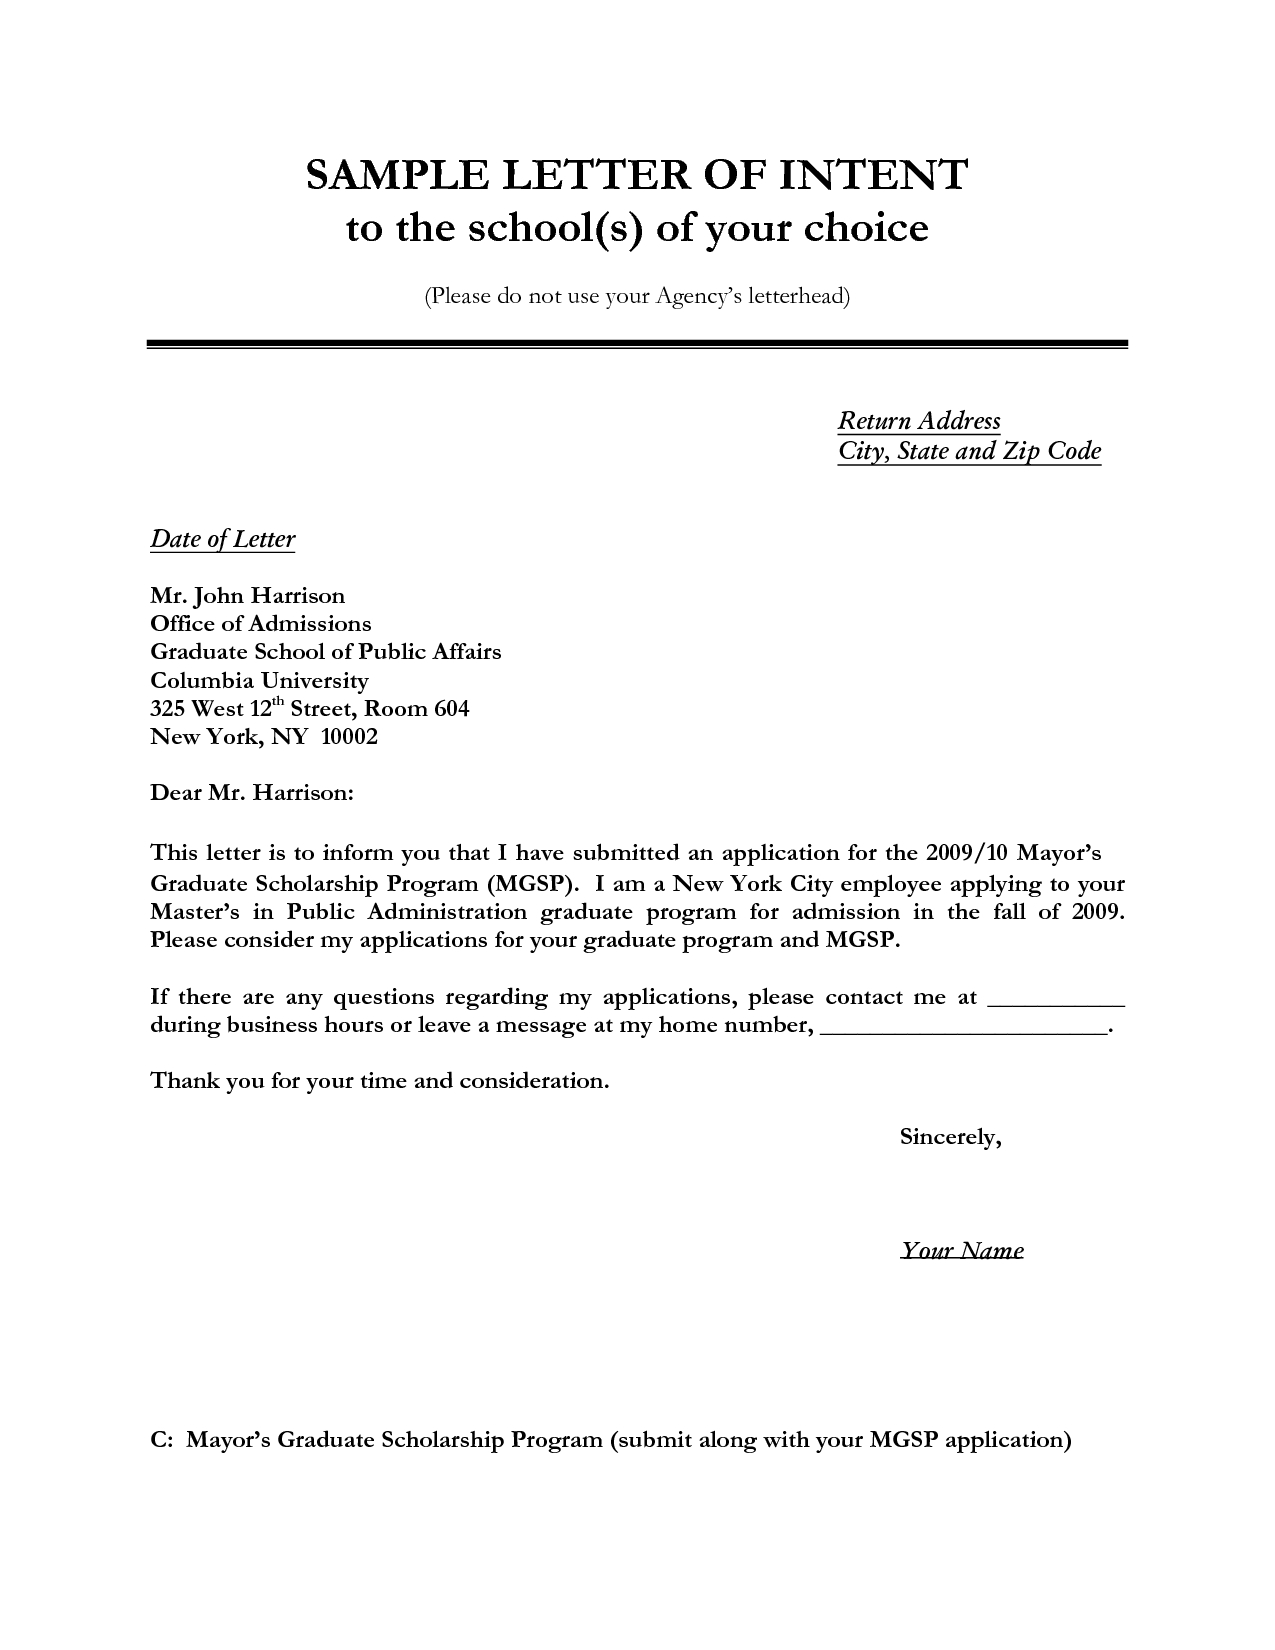 Letter Of Intent Investment Template - Letter Of Intent Sample